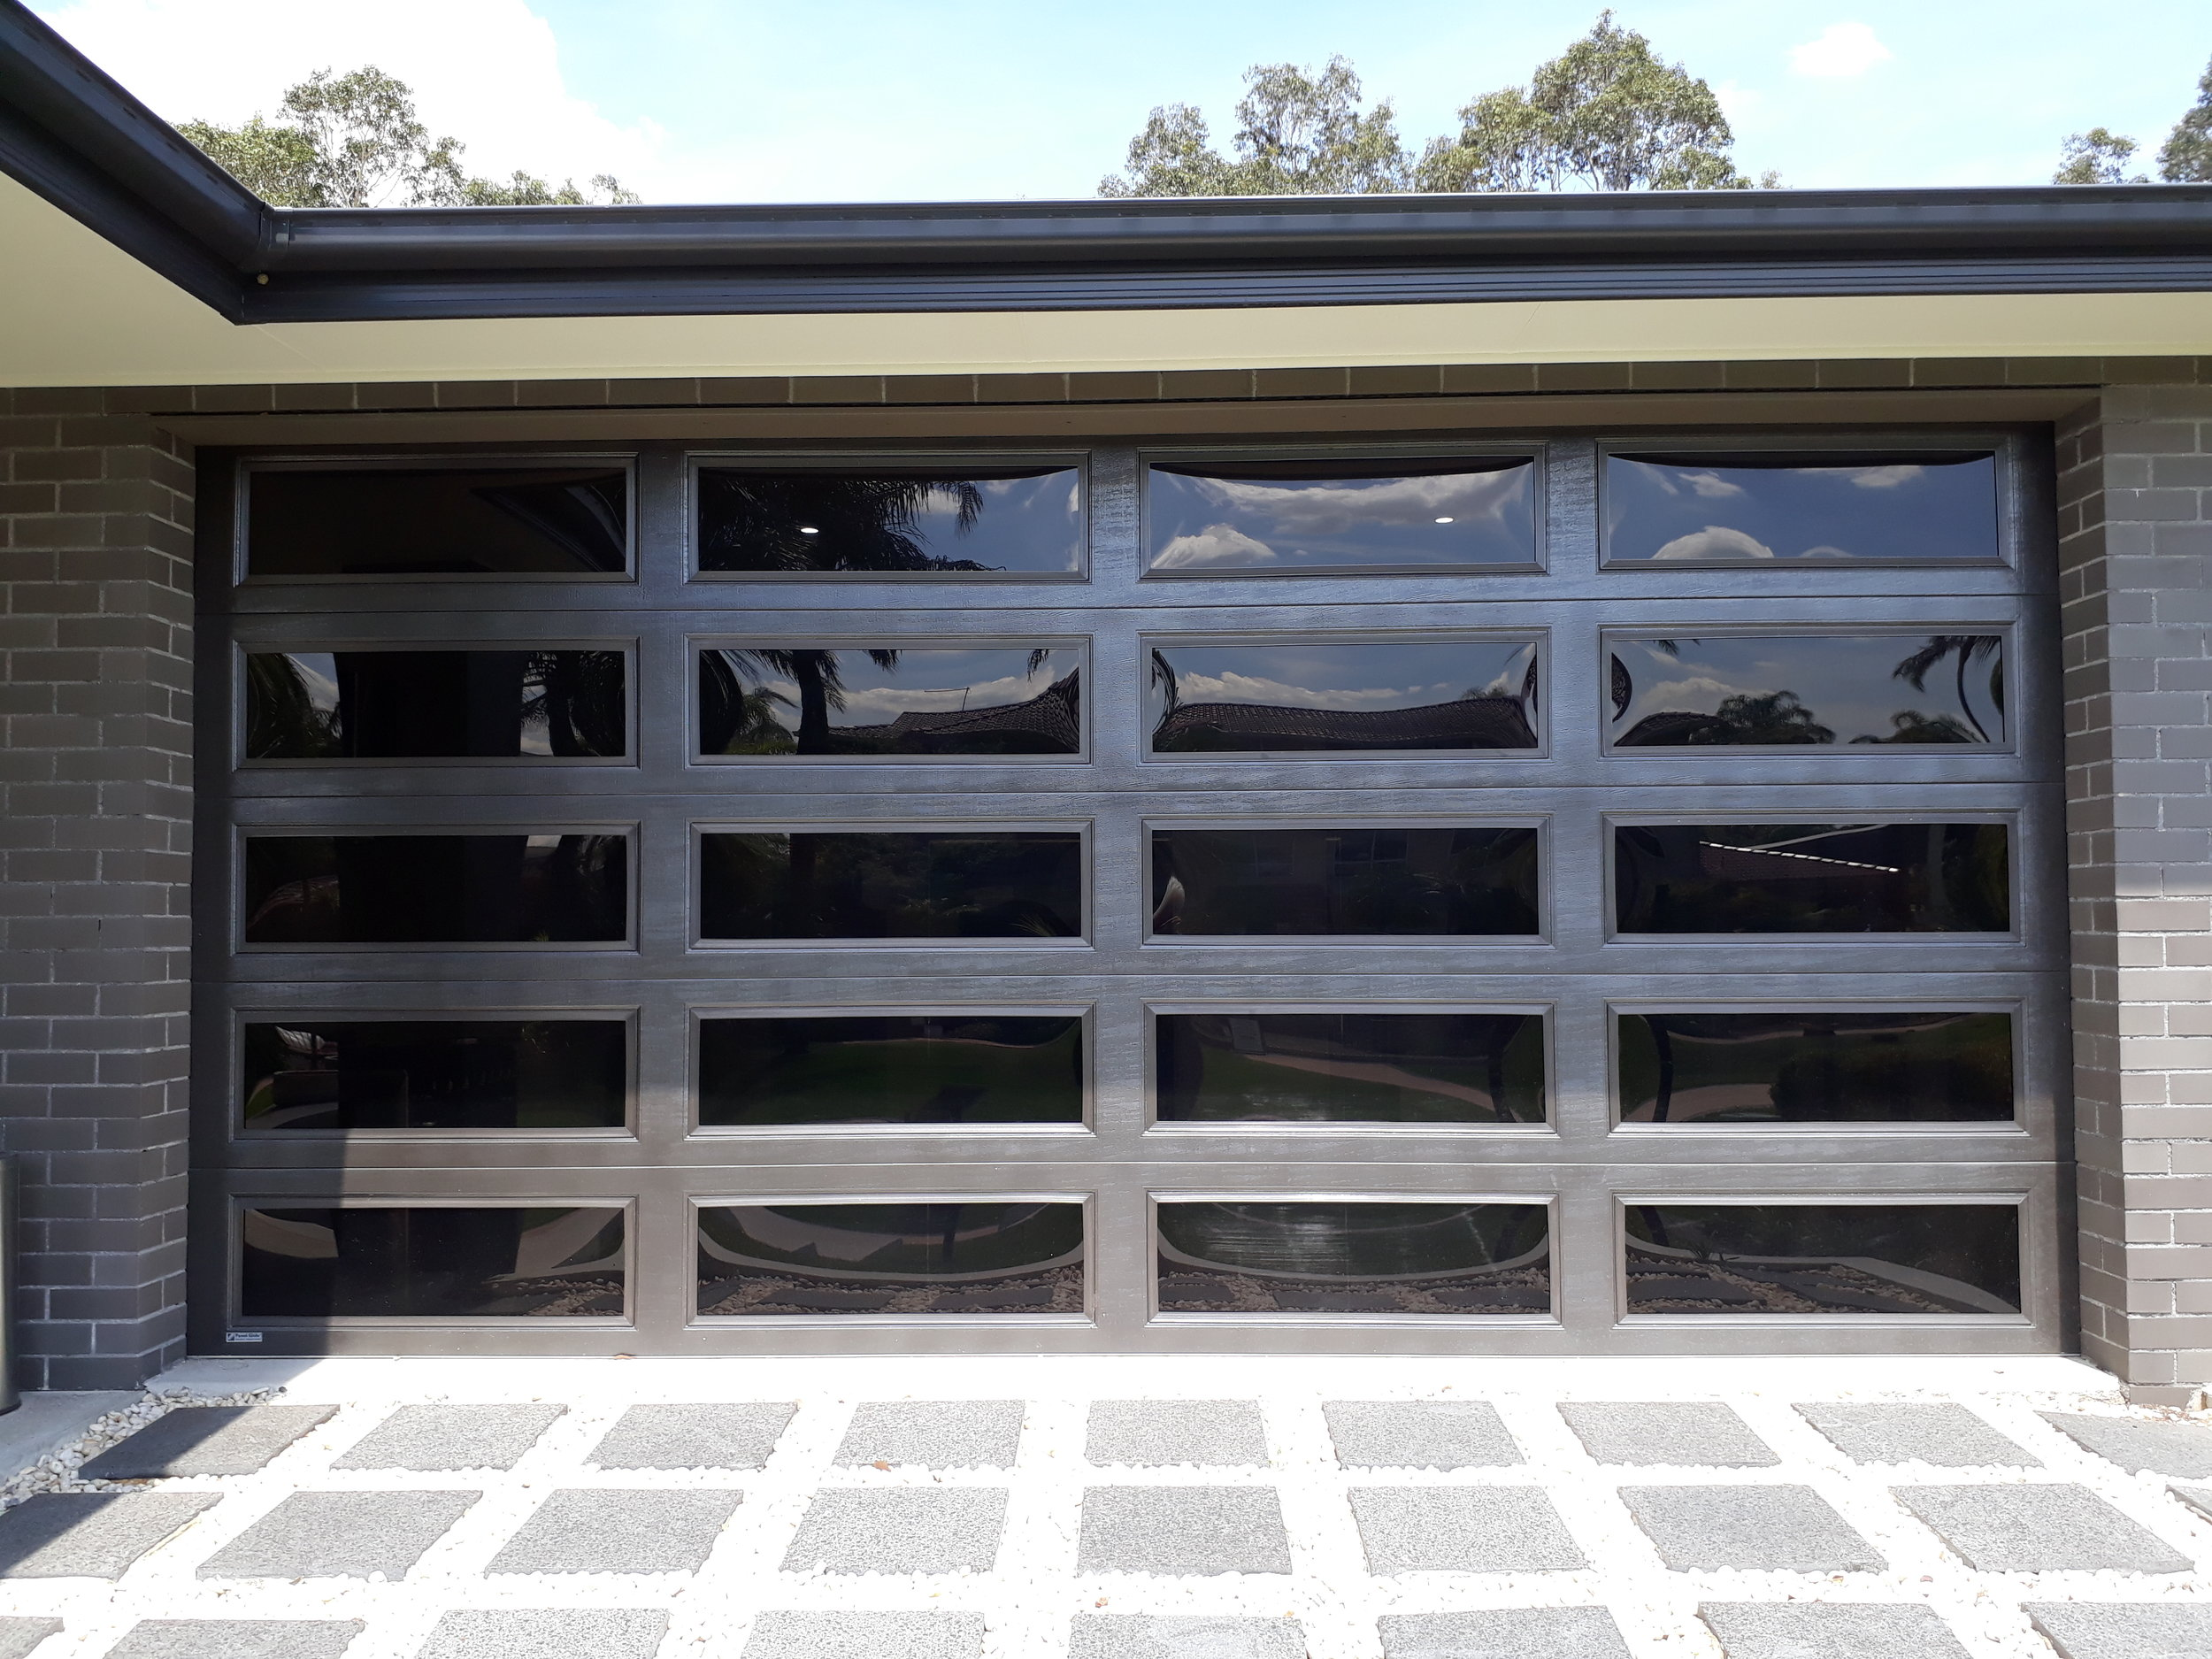 Colorbond hampton sectional DOOR full window treatment. (CLICK ON IMAGE TO ENLARGE)